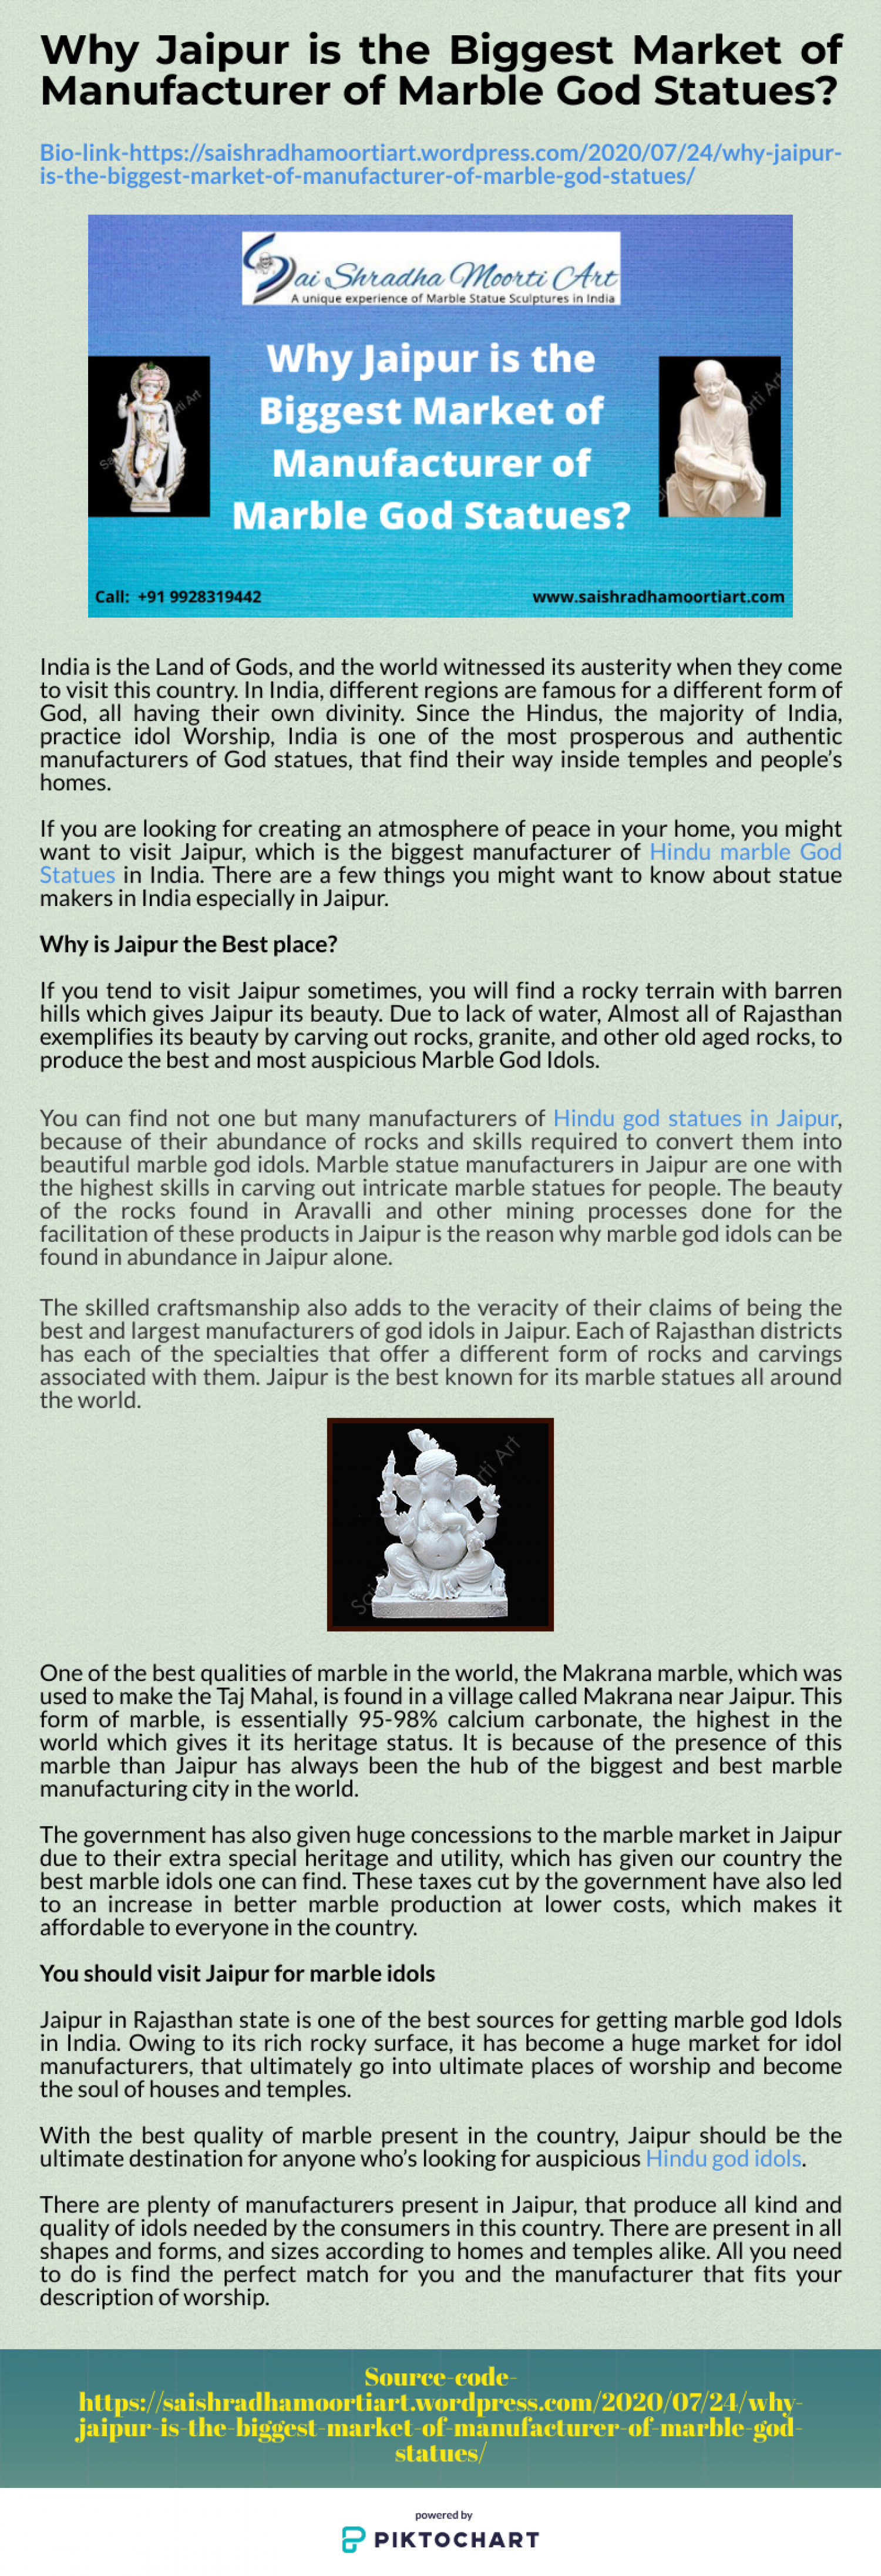 Why Jaipur is the Biggest Market of Manufacturer of Marble God Statues Infographic